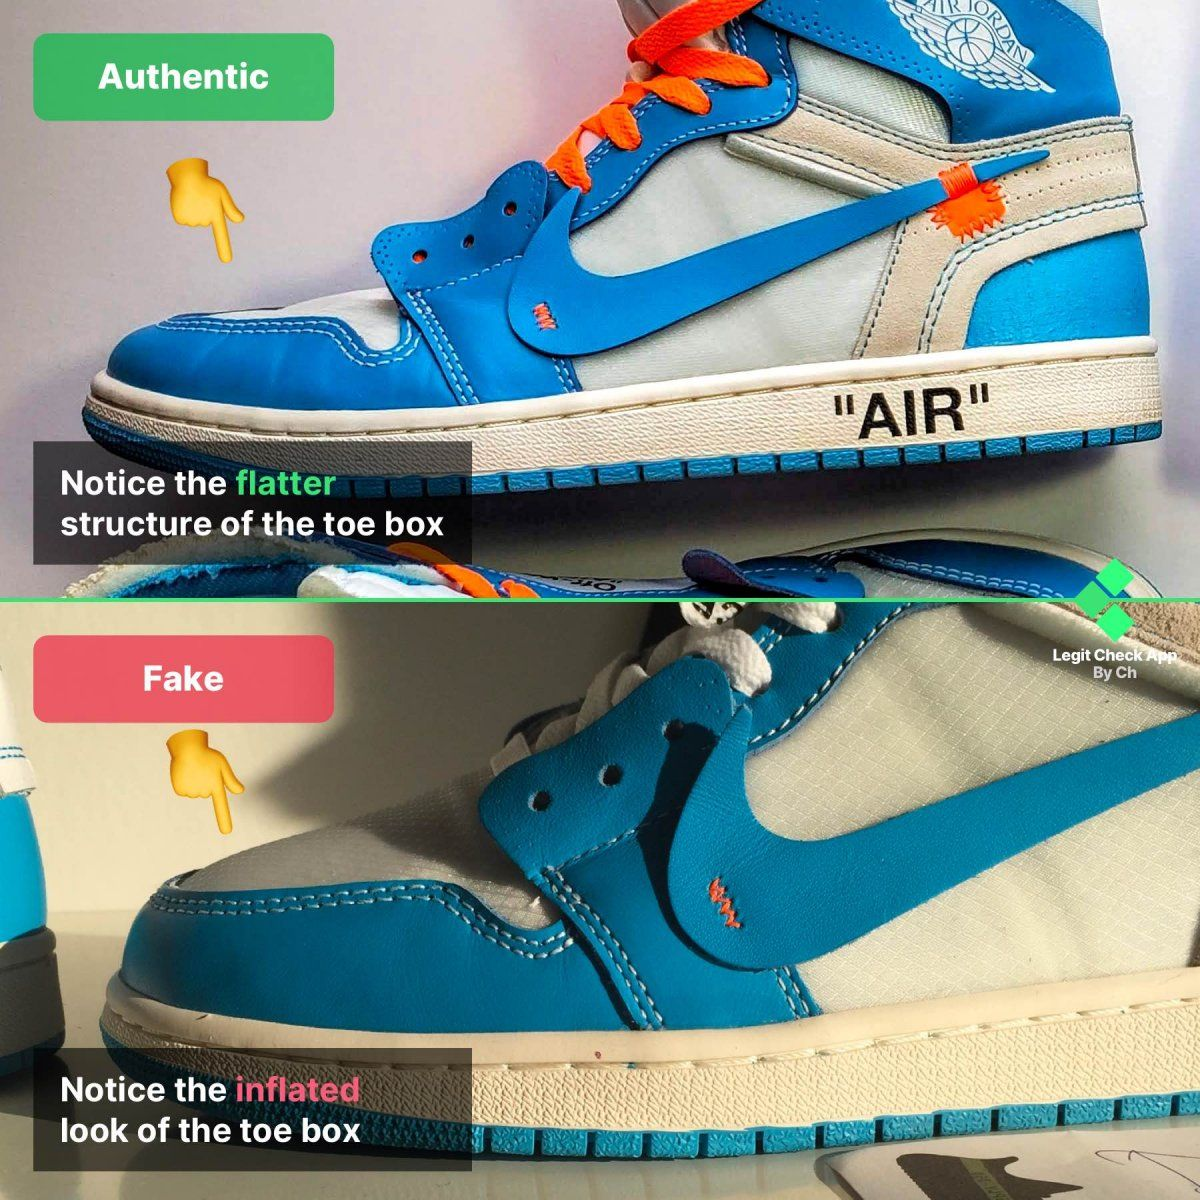 Step 1 Check the shape of the OW Air Jordan 1 UNC